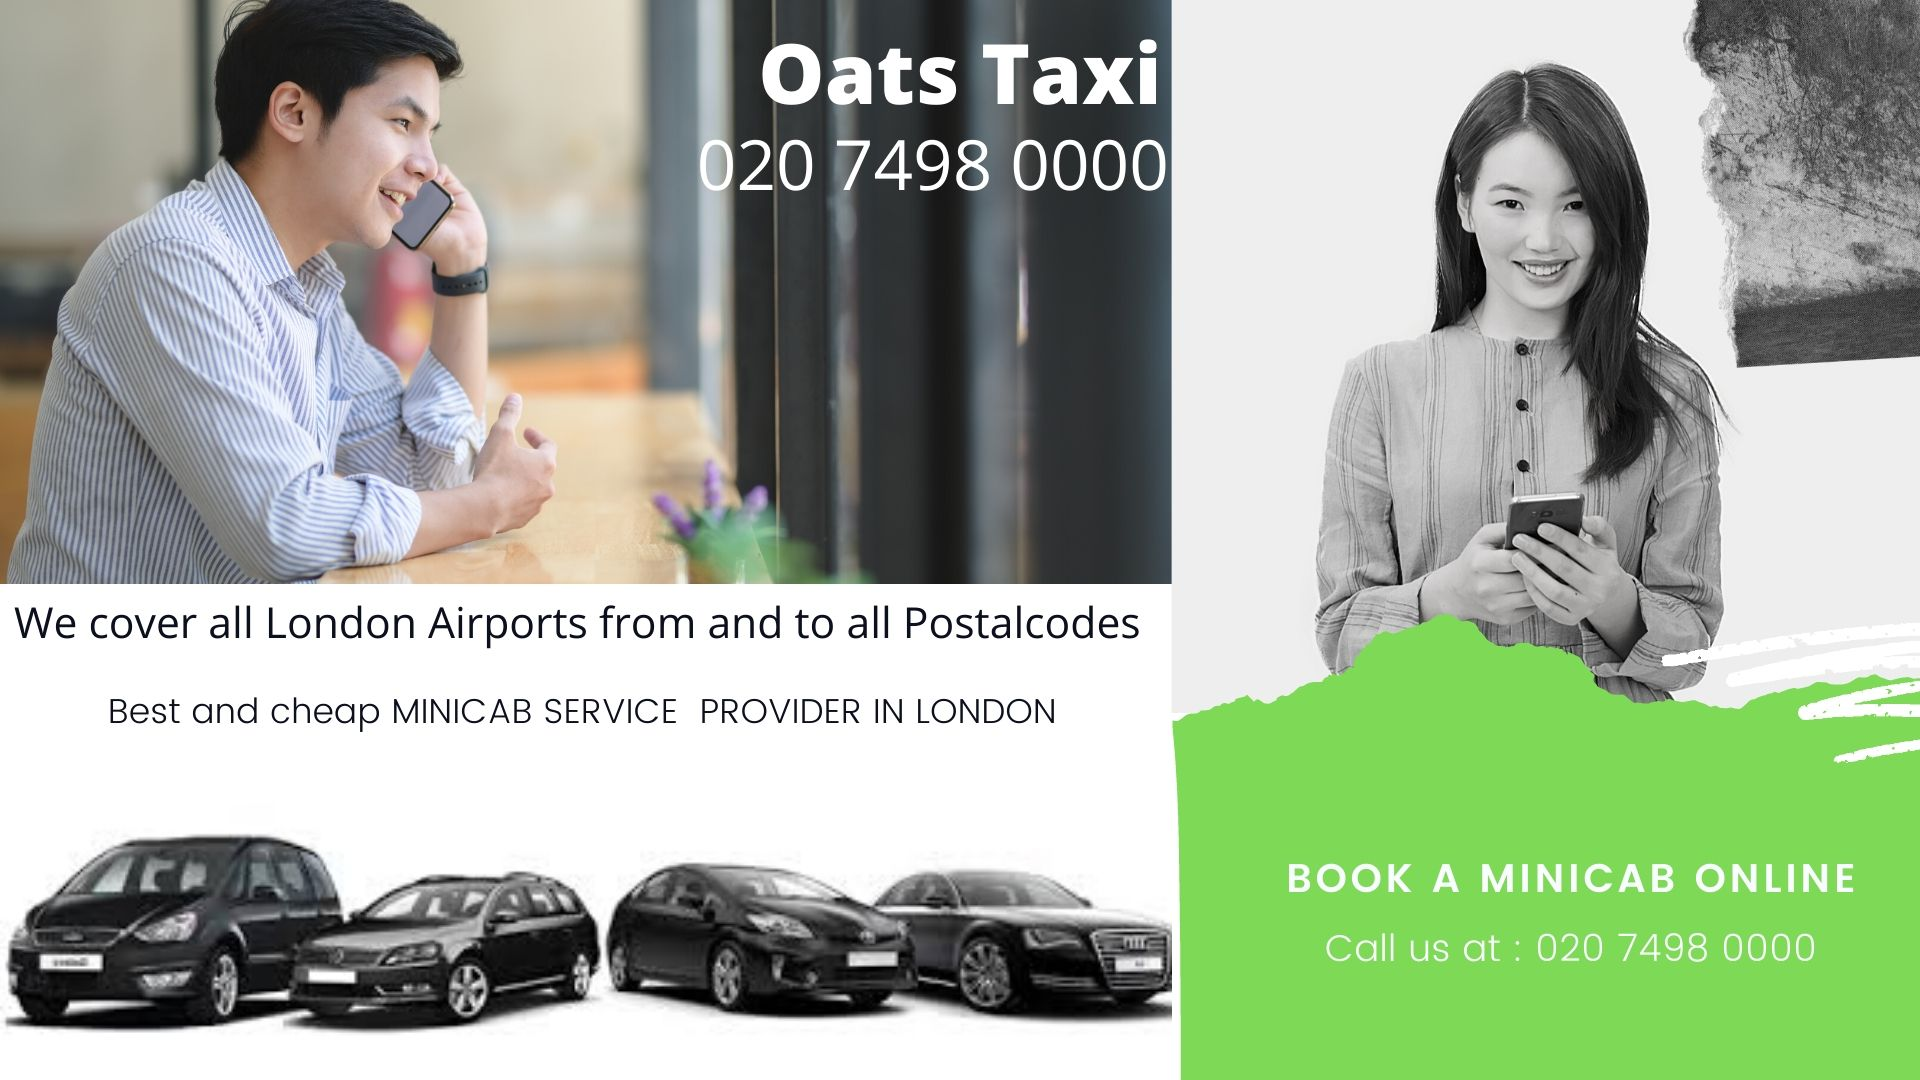 Nearest Minicab Office in Croydon, Surrey | Nearest Minicab Office in Gatwick Airport | Call now : 02074980000